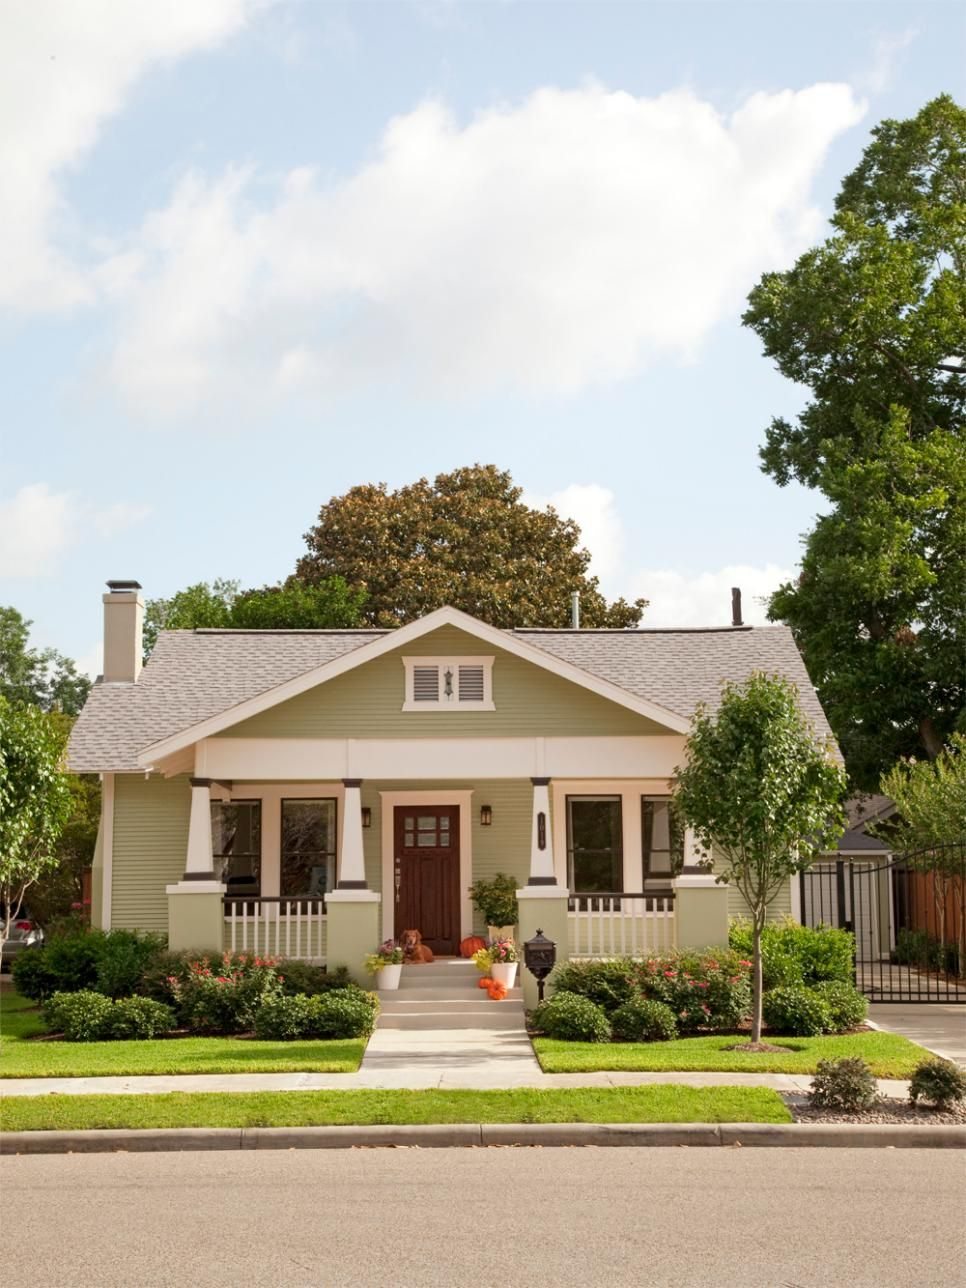 Boost Your Curb Appeal With A Bungalow Look Craftsman Bungalows - Craftsman home rehabilitation in houston